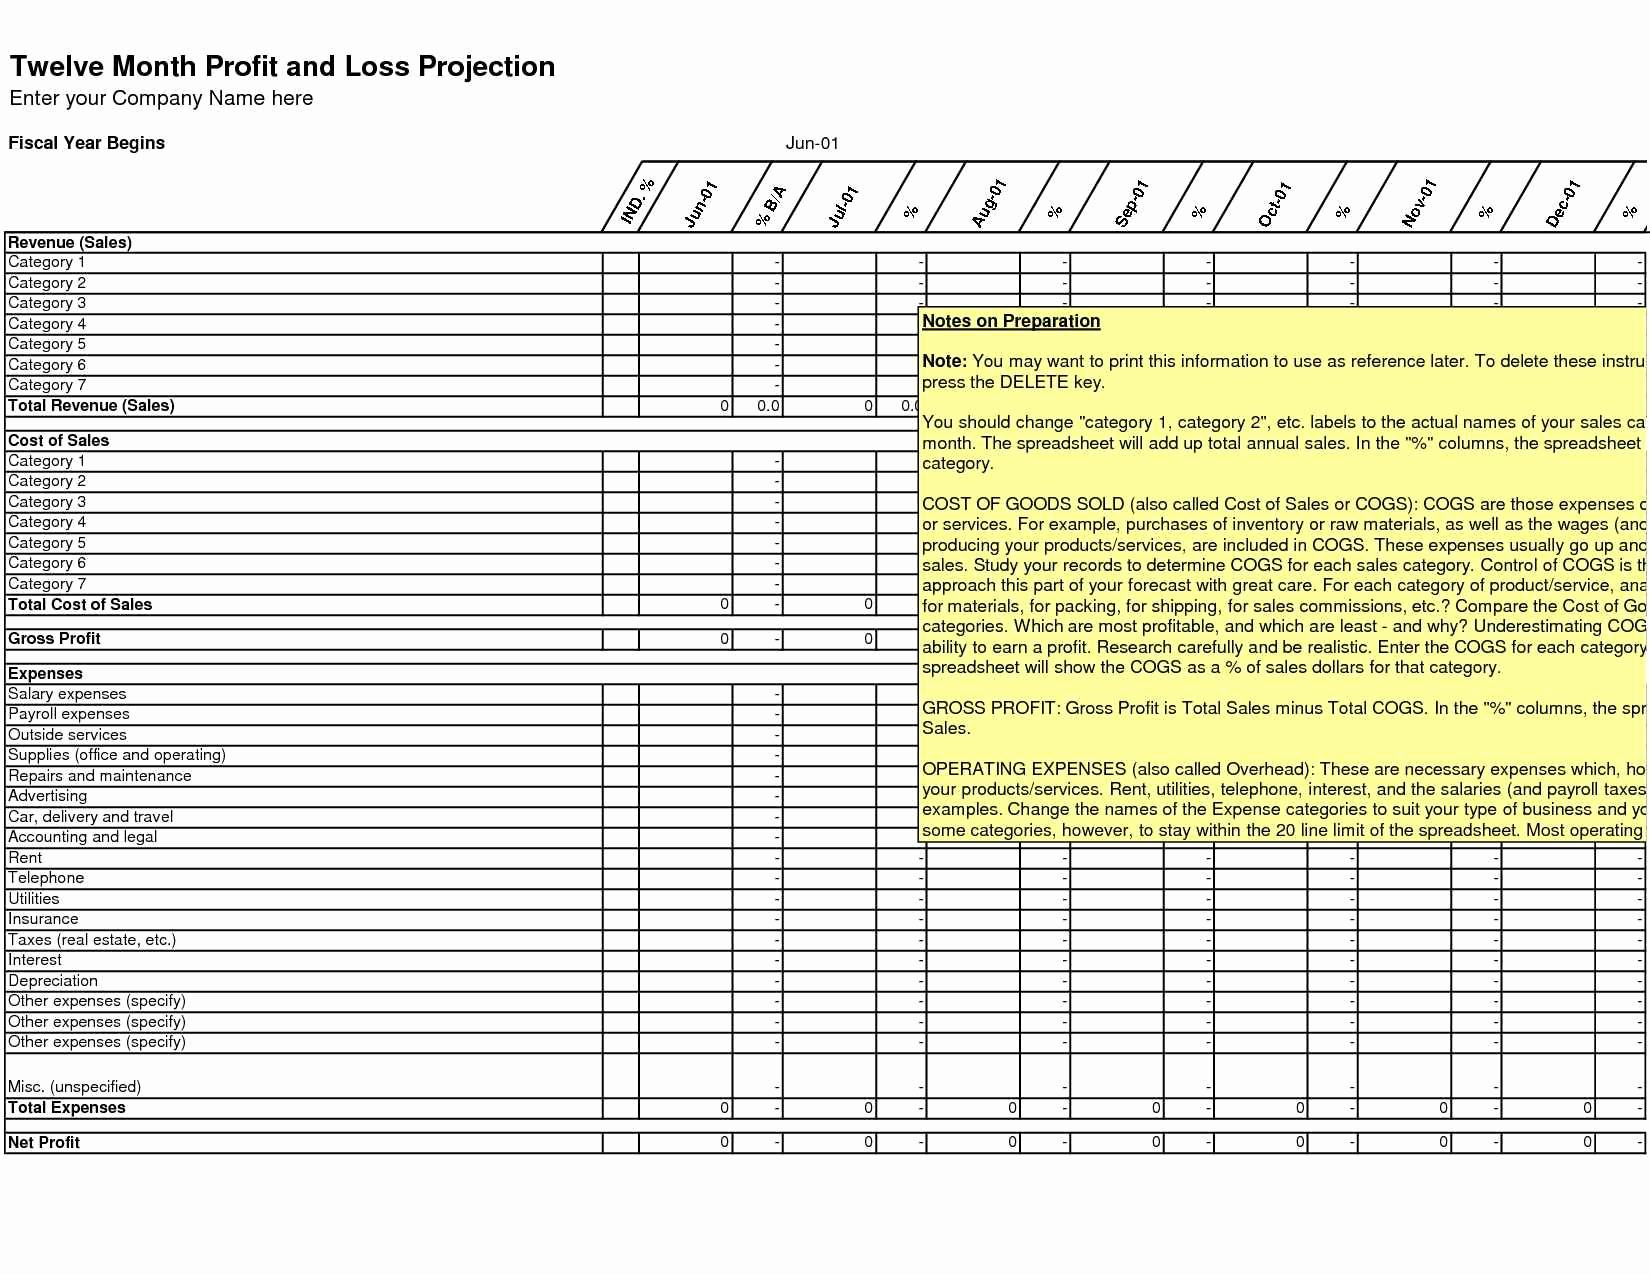 Payroll Forecasting Spreadsheet Spreadsheet Downloa Payroll Forecasting Spreadsheet